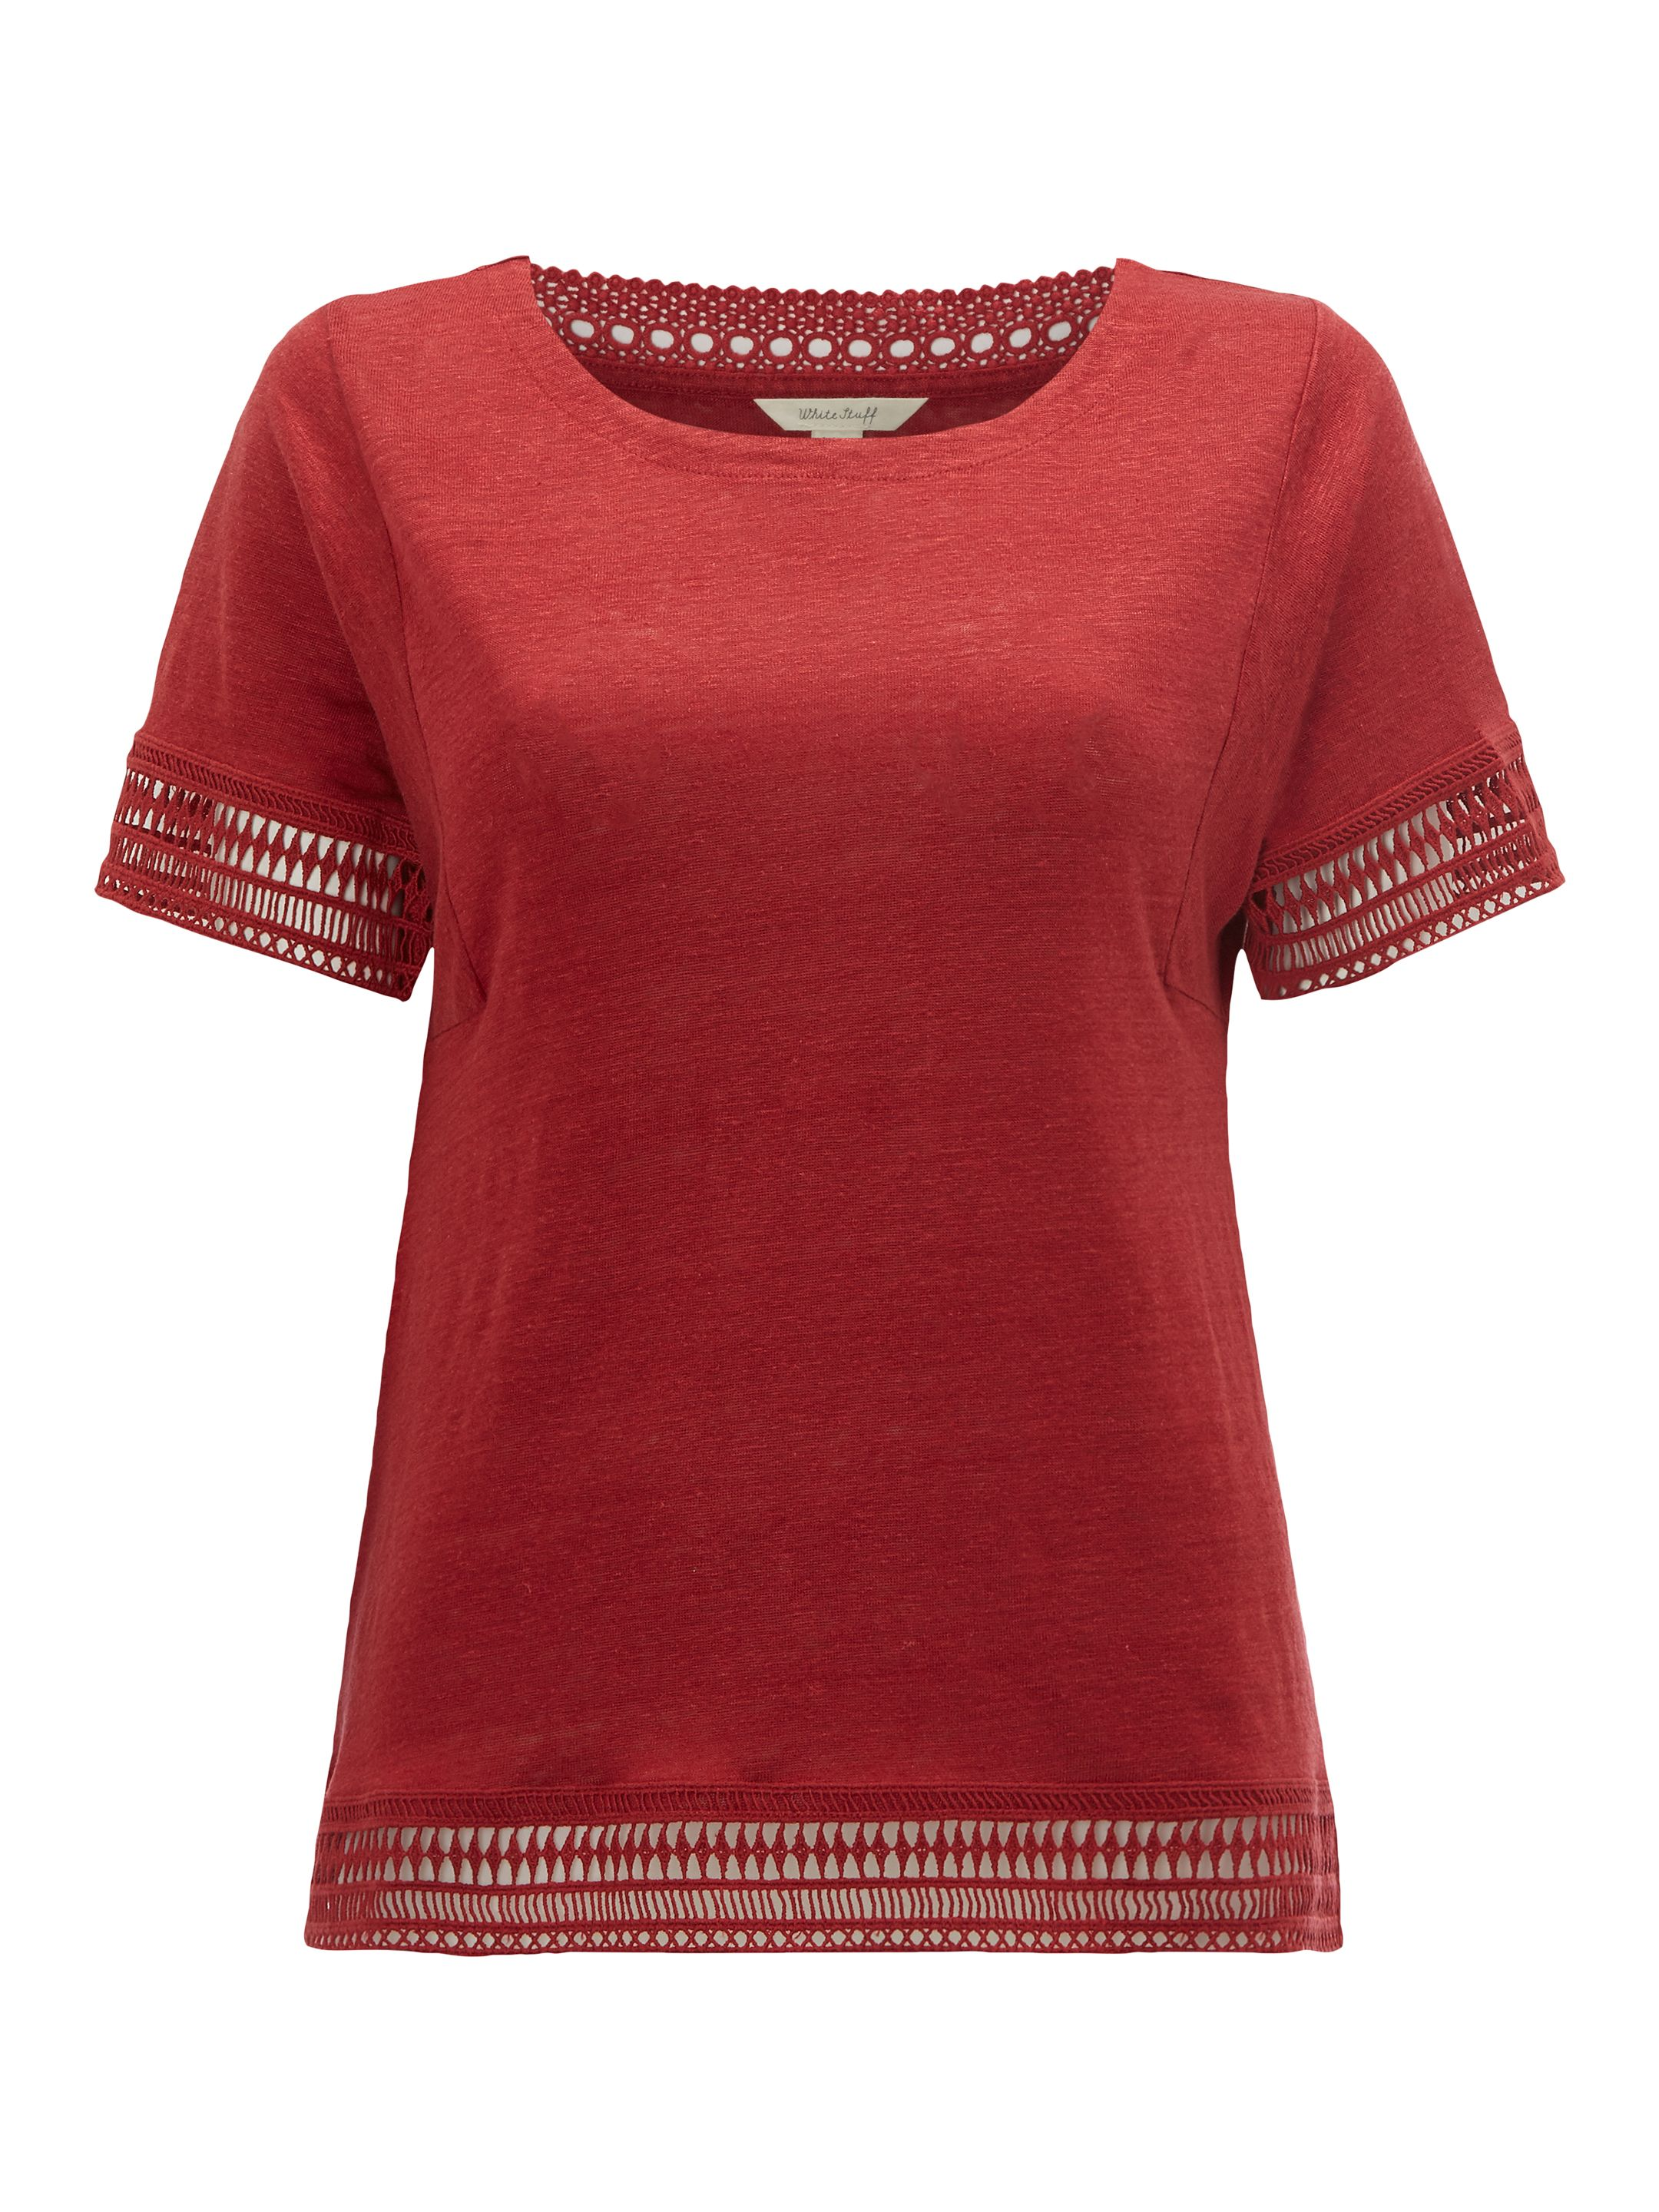 White Stuff Shelly Jersey Tee, Red